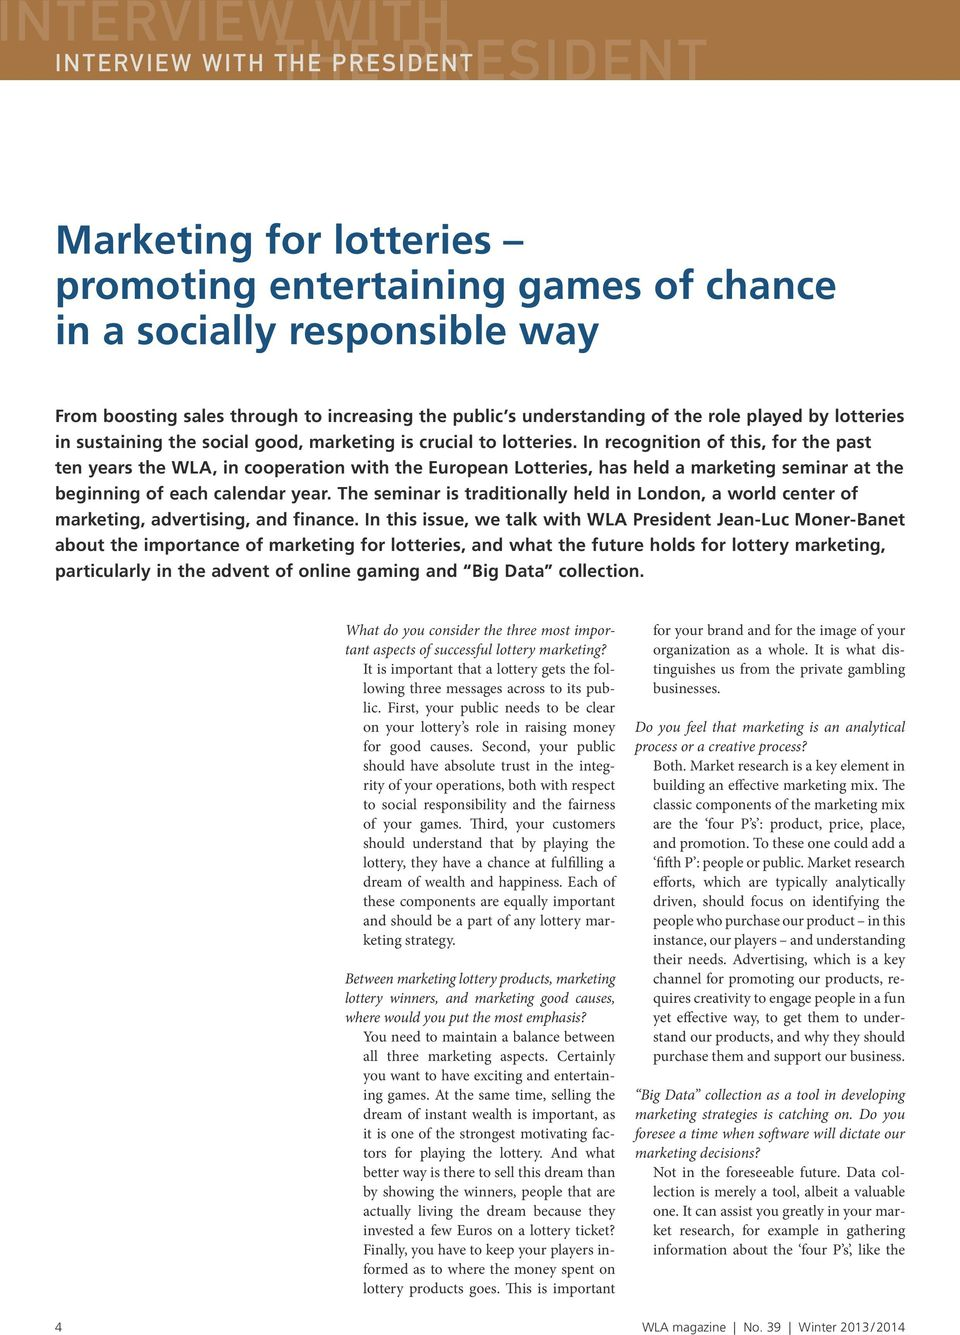 In recognition of this, for the past ten years the WLA, in cooperation with the European Lotteries, has held a marketing seminar at the beginning of each calendar year.